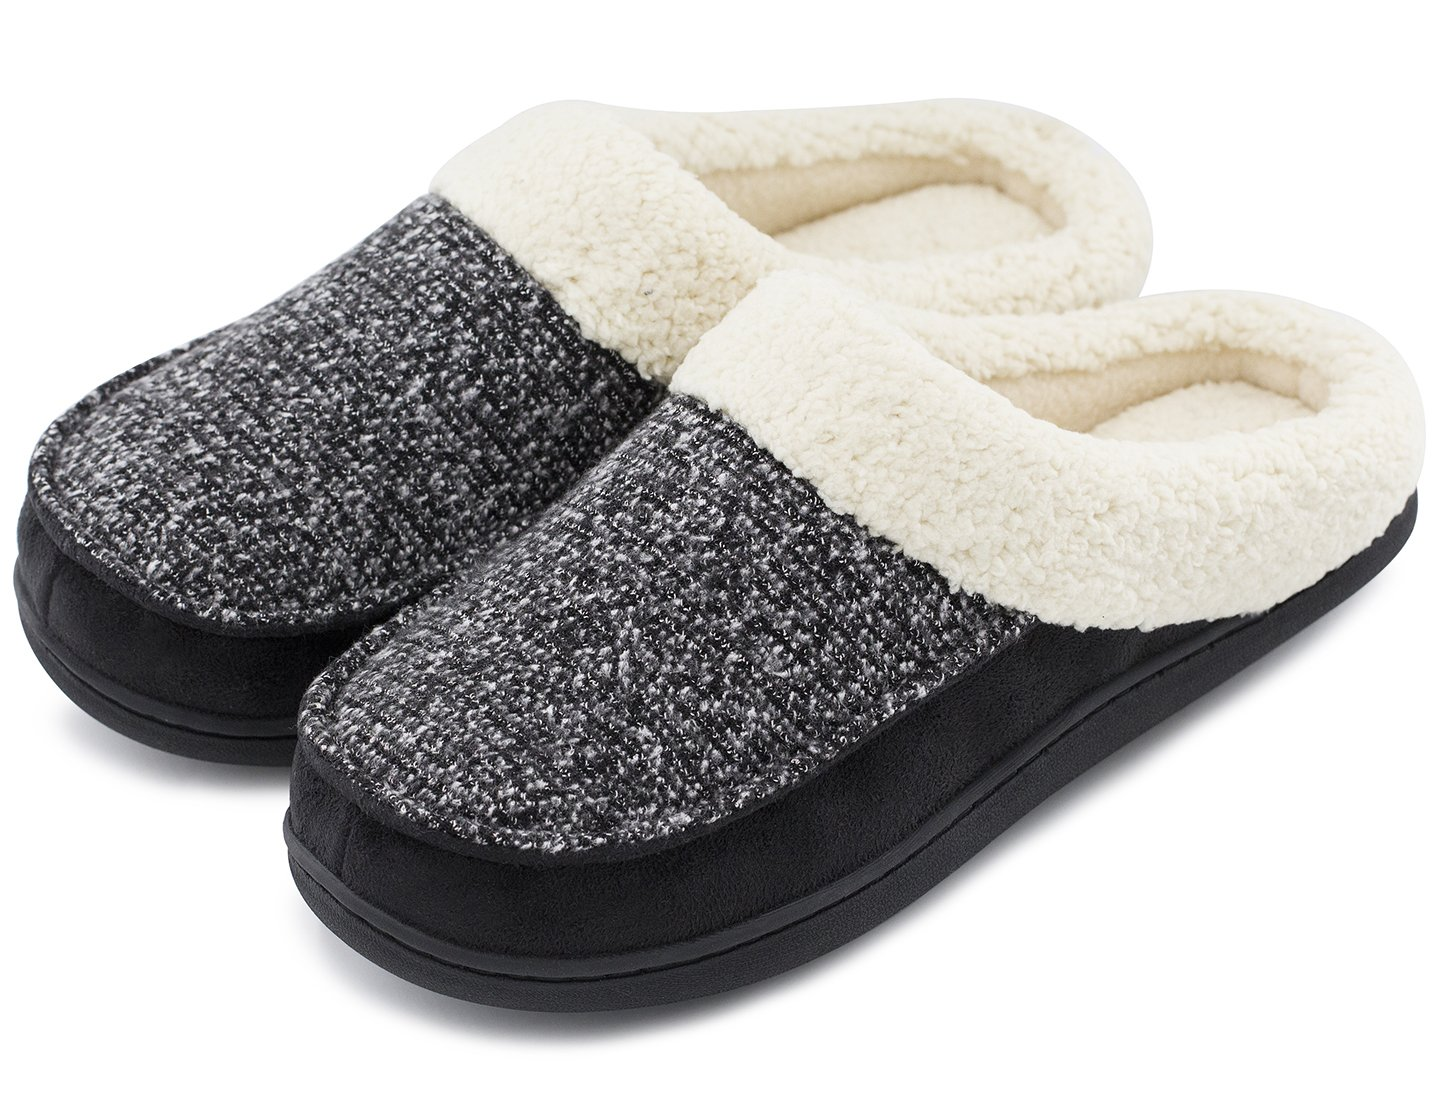 Women's Comfort Memory Foam Slippers Fuzzy Wool Plush Slip-On Clog House Shoes w/Indoor & Outdoor Sole (X-Large / 11-12 B(M) US, Neutral Black)